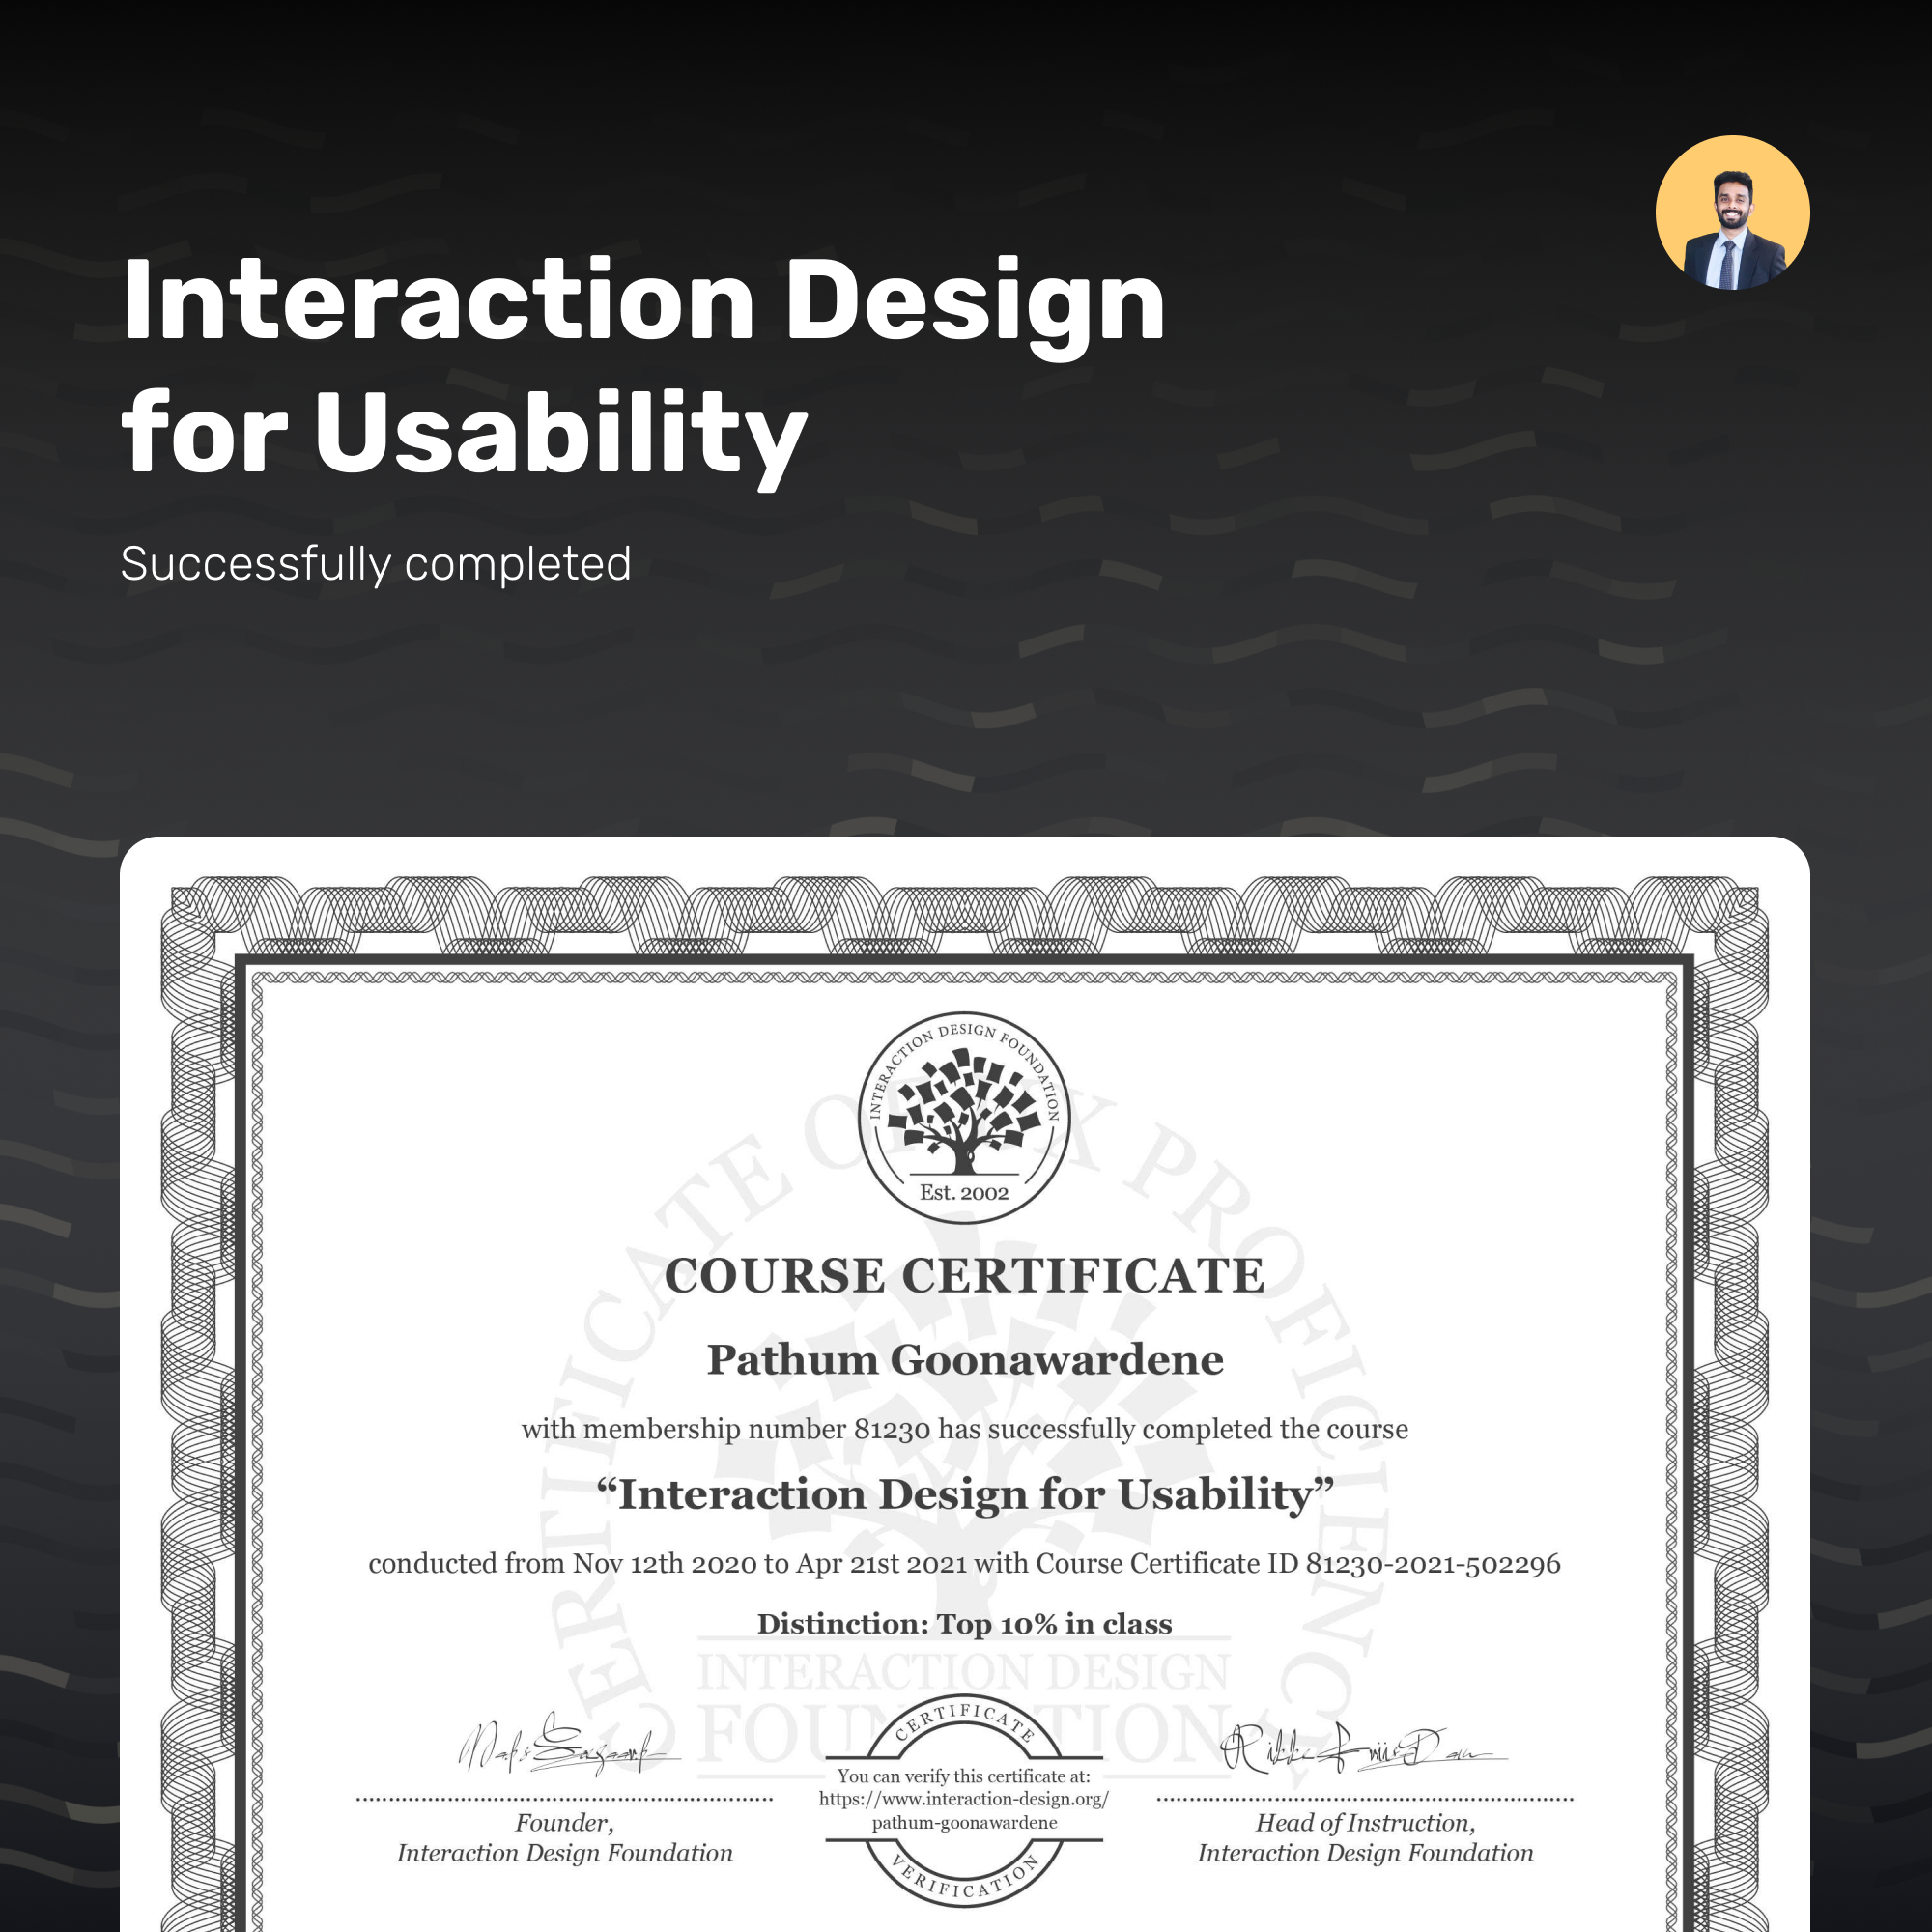 Interaction Design for Usability